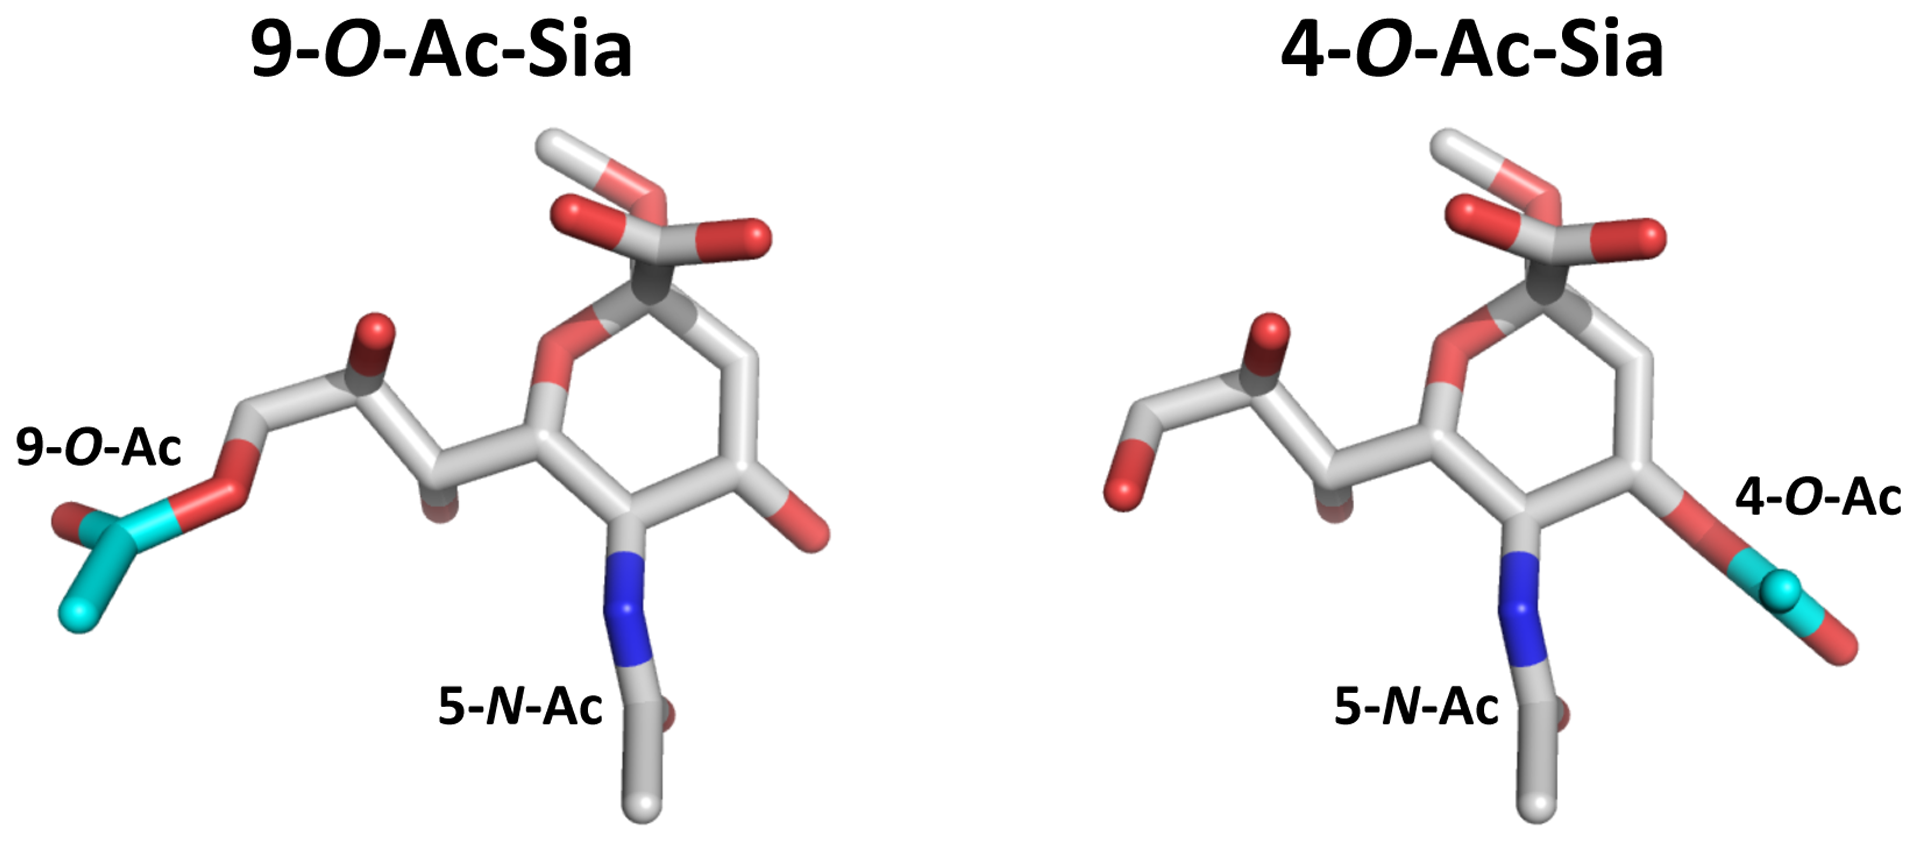 Stereochemical differences between 9-<i>O</i>- and 4-<i>O</i>-acetylated sialic acid.